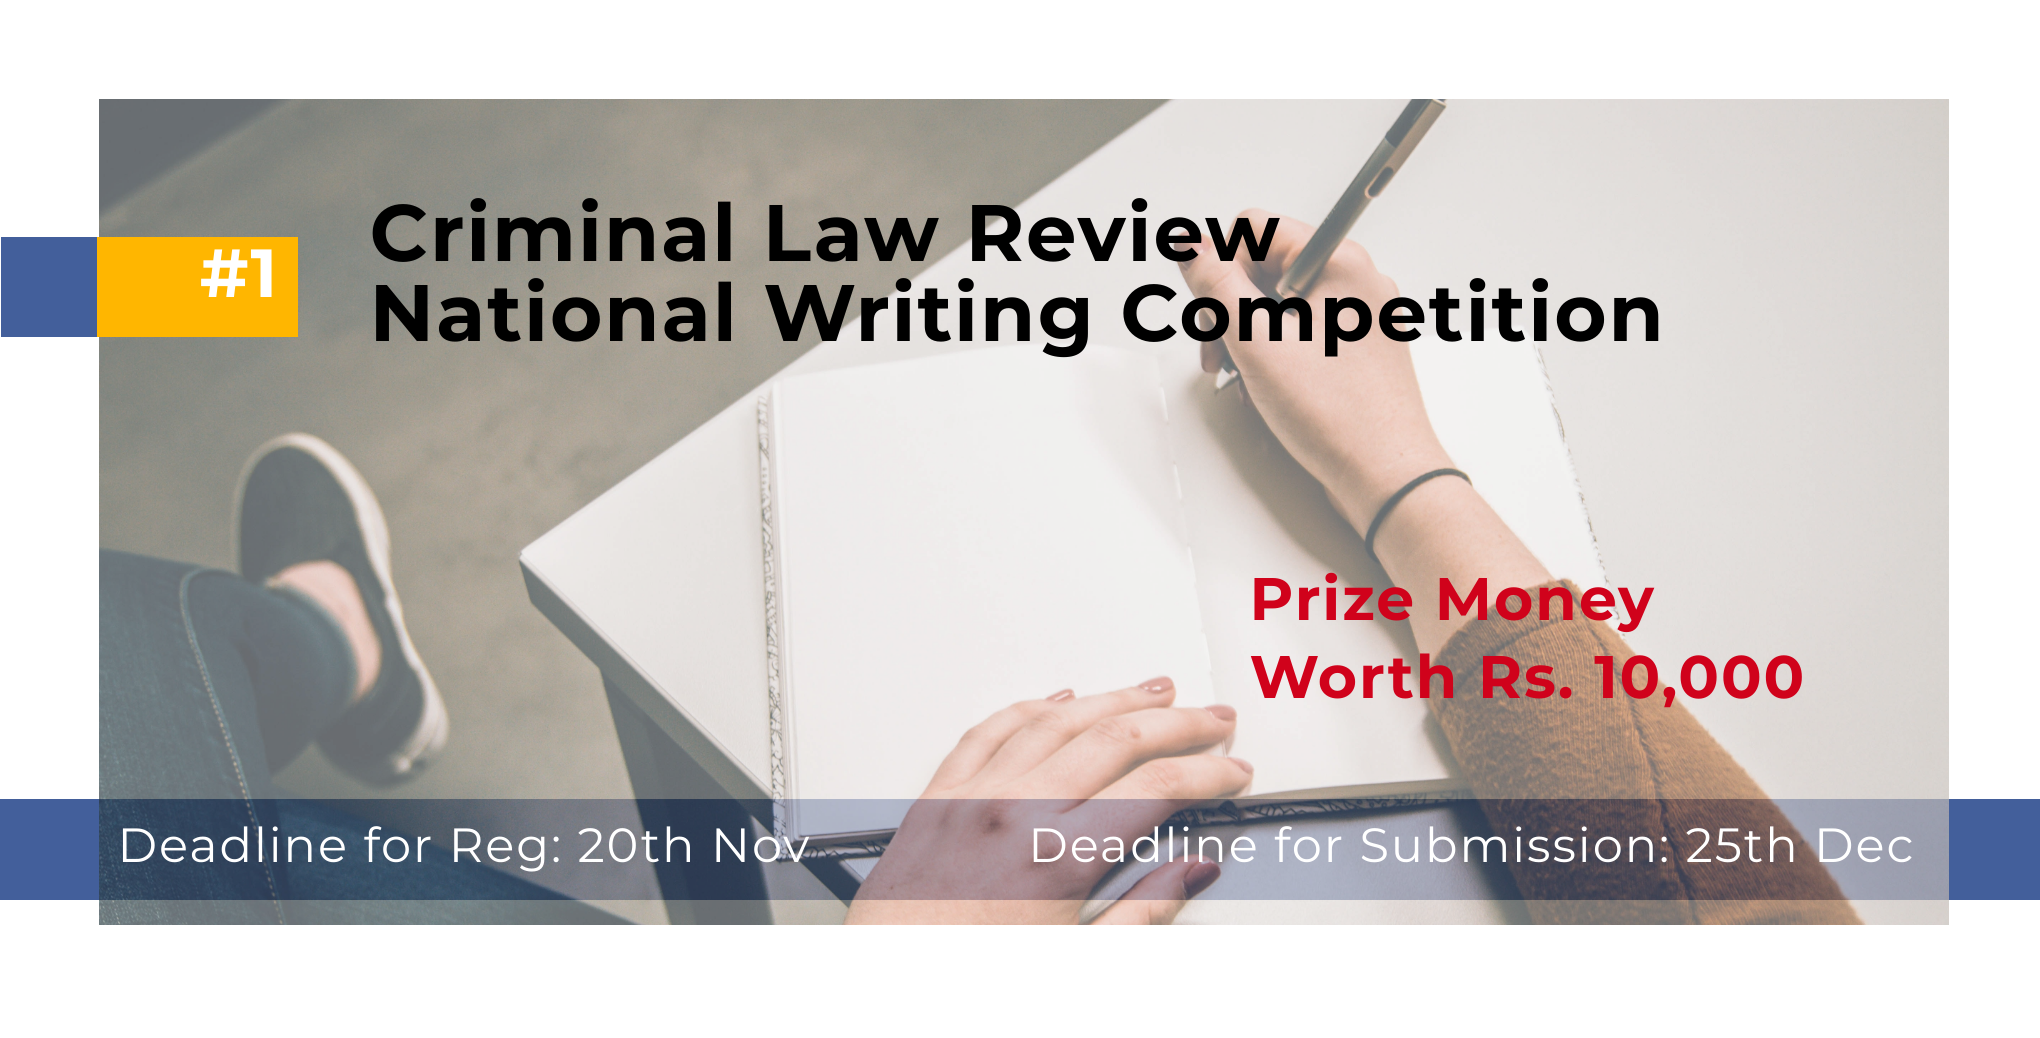 National Writing Competition by Criminal Law Review